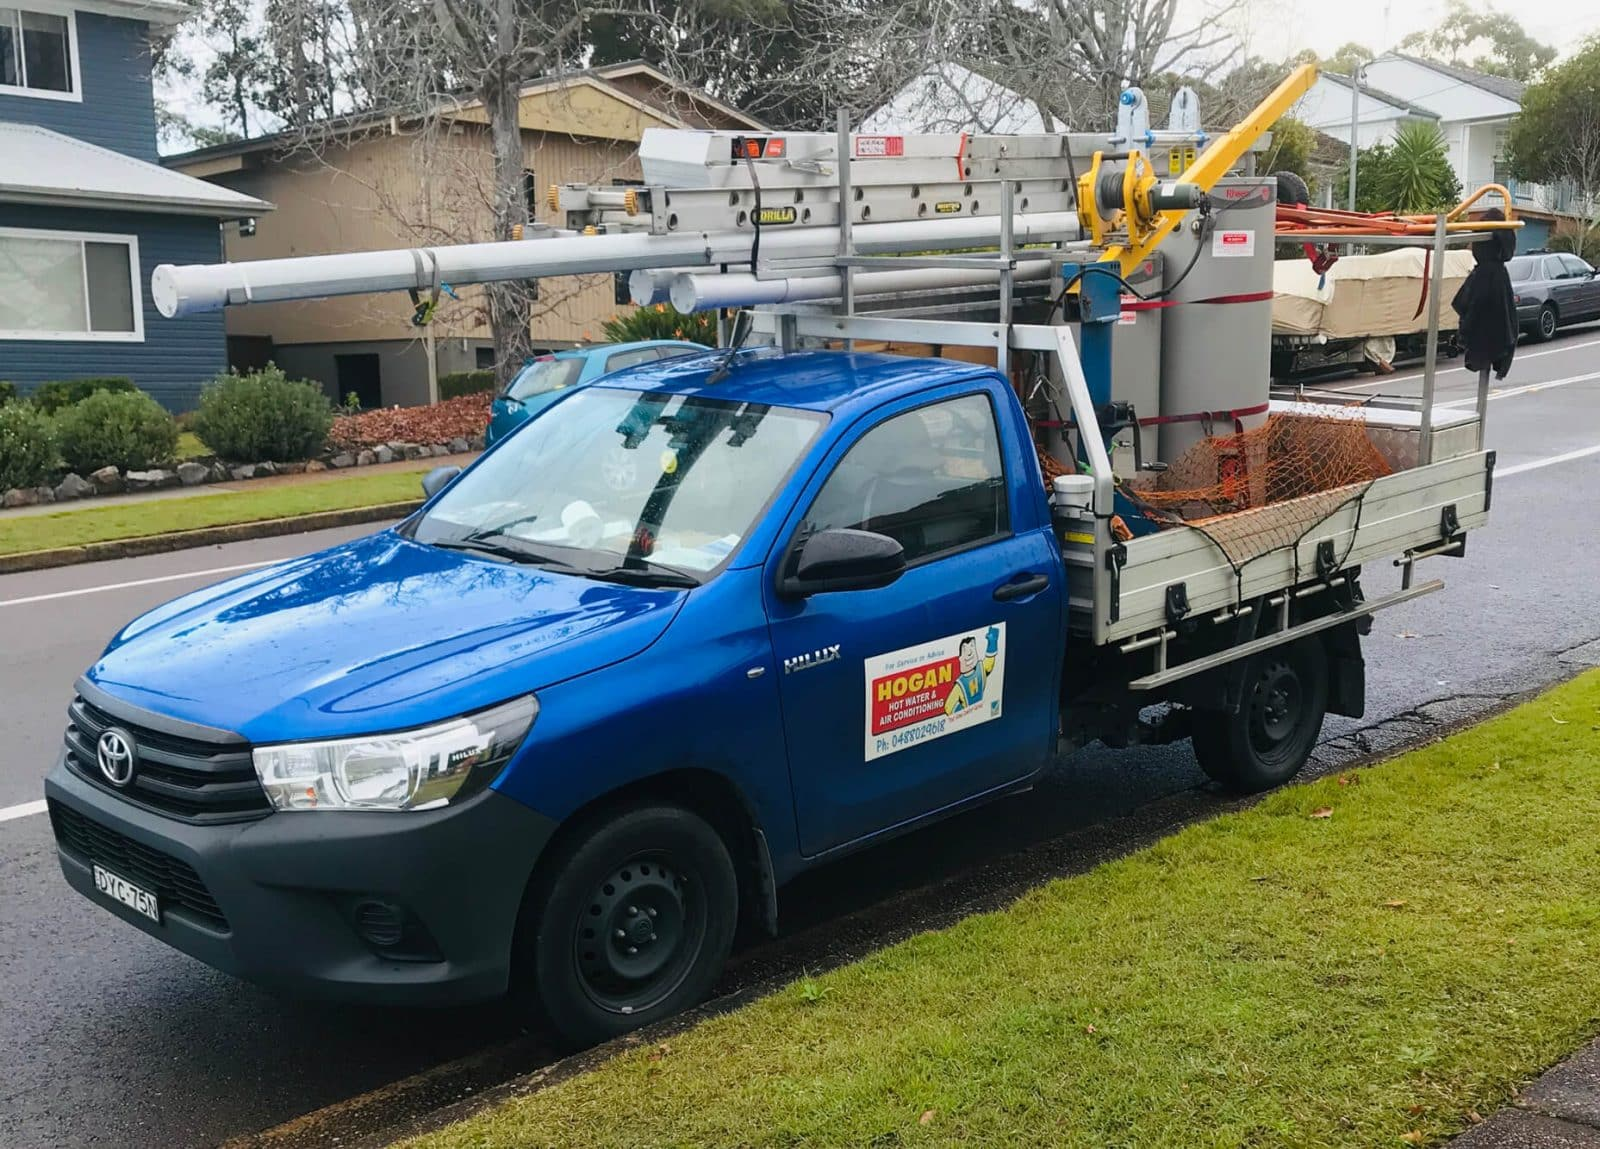 Newcastle air conditioning service